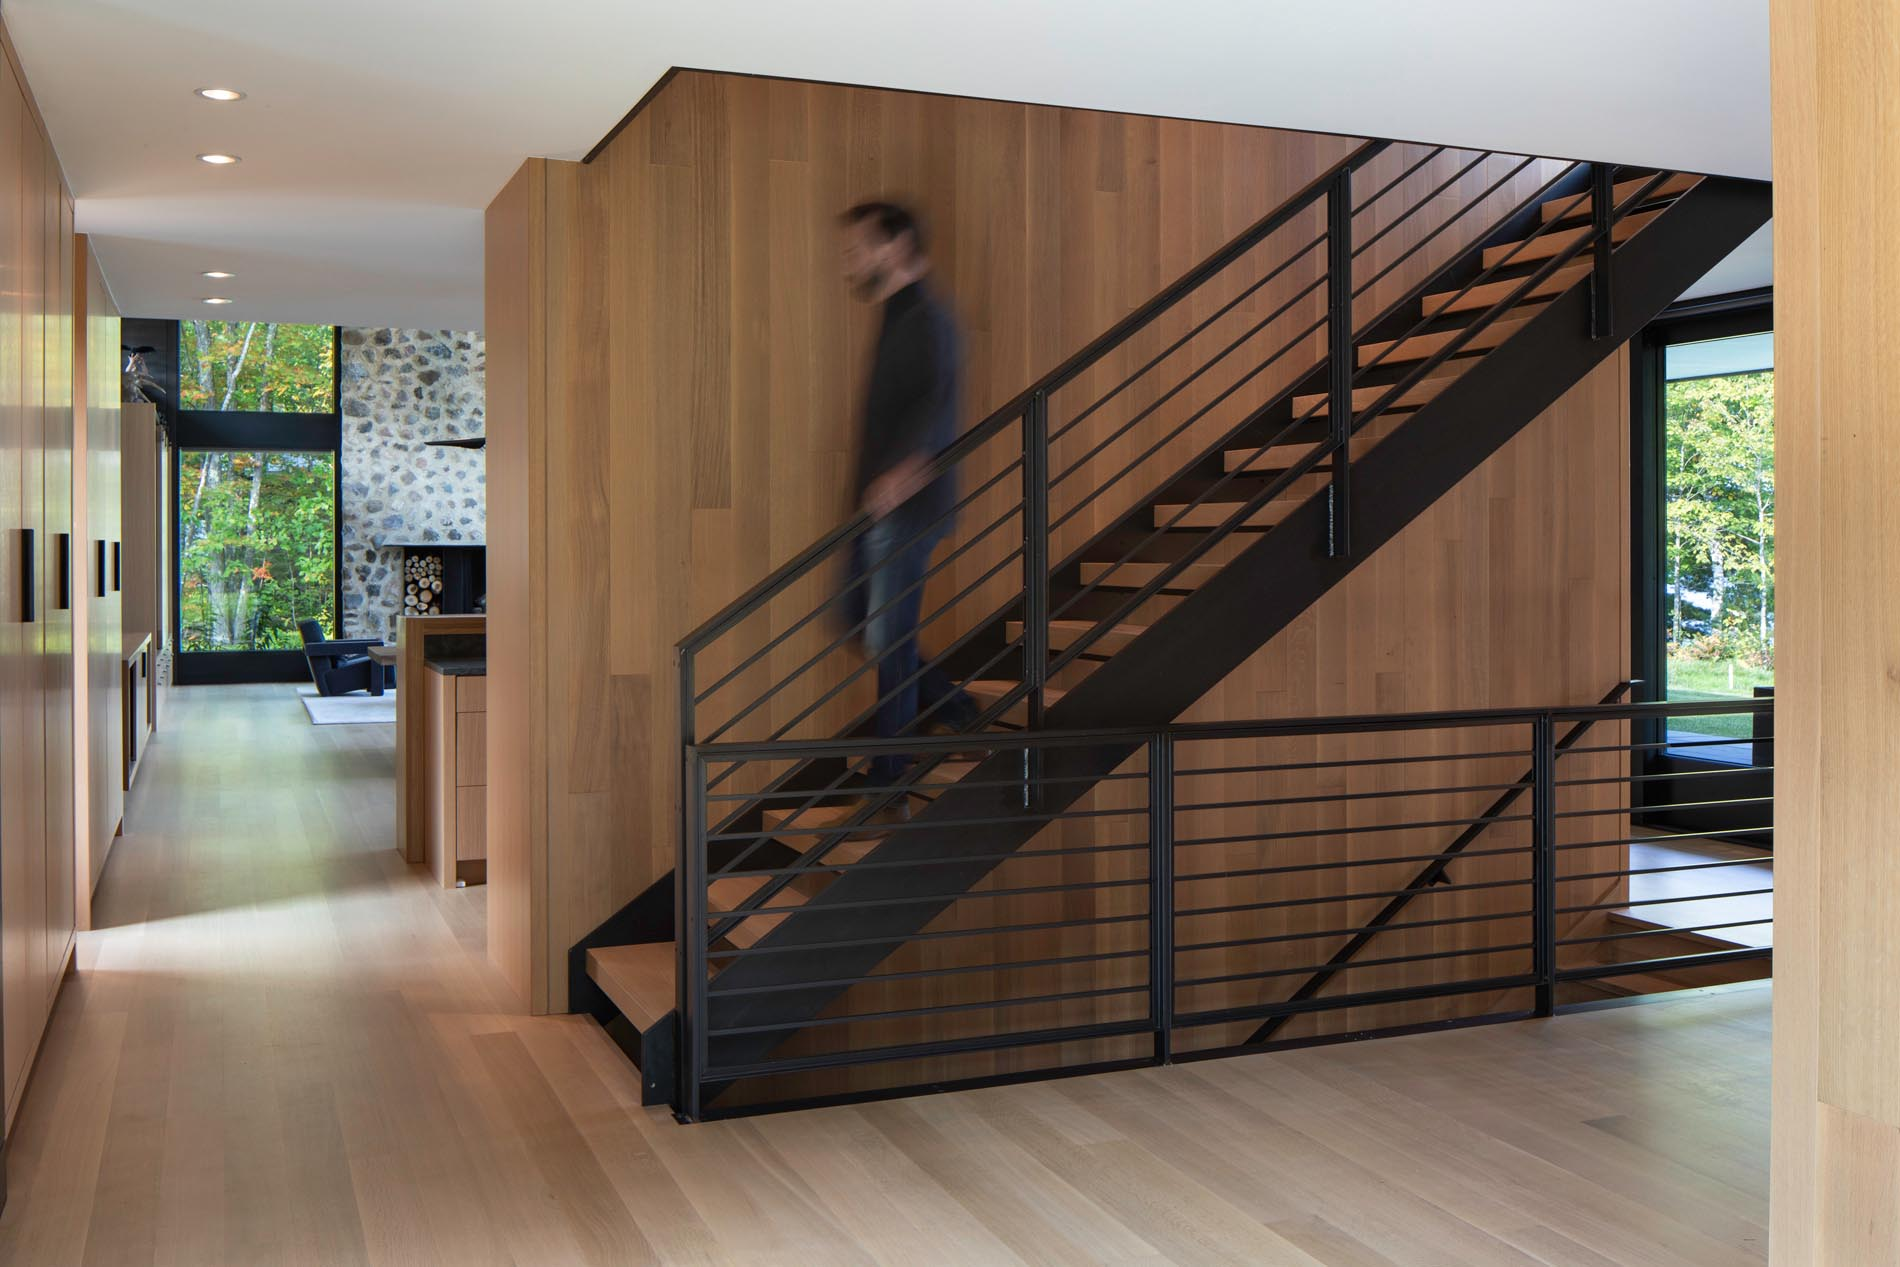 Metal railings with white oak treads match the wood used in the kitchen, and lead to the loft and the lower level of the home.